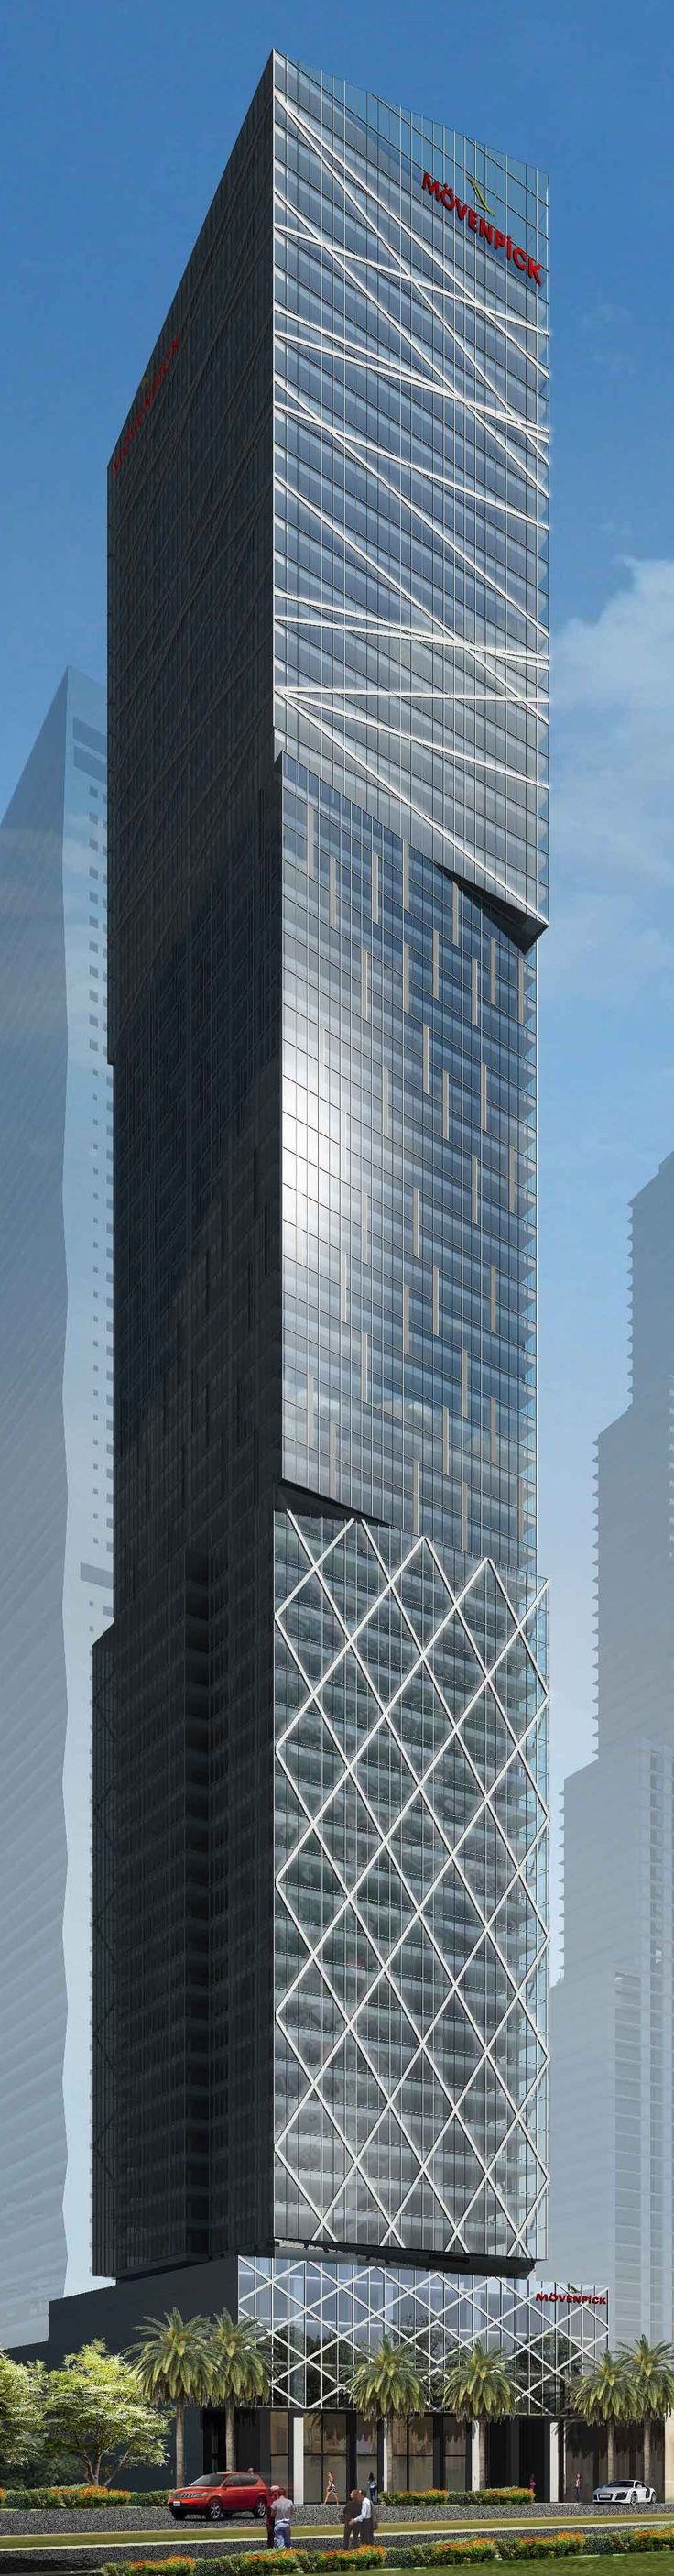 Mövenpick Hotel  Residences, Makati, Manila Philippines by Rchitects :: 74 floors, height 244m